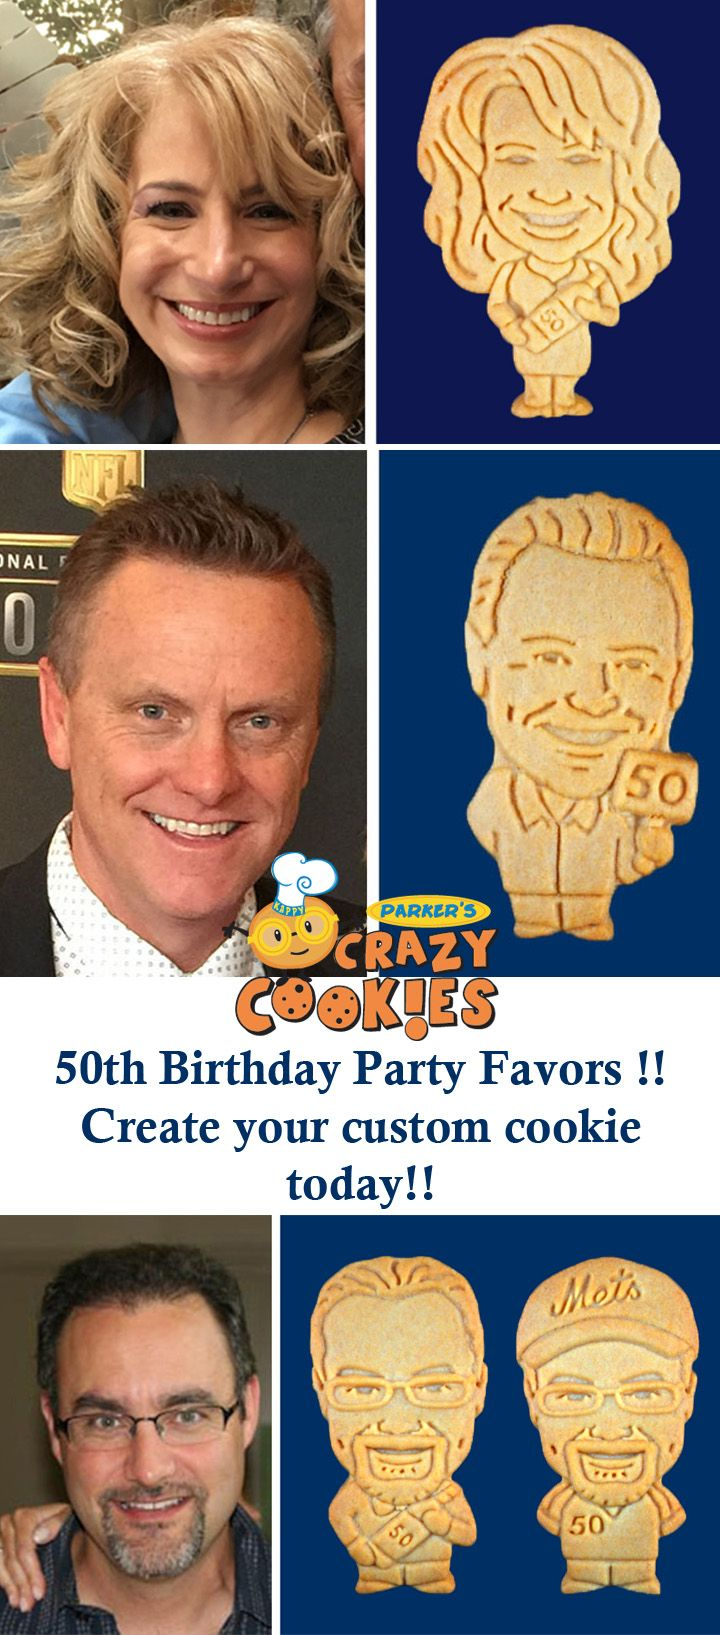 The most unique 50th Birthday Party Favors!! Create a custom cookie of your birthday guy or girl to celebrate 50 years!! Discover the magic at www.parkerscrazycookies.com As seen on the Food Network and Today Show!